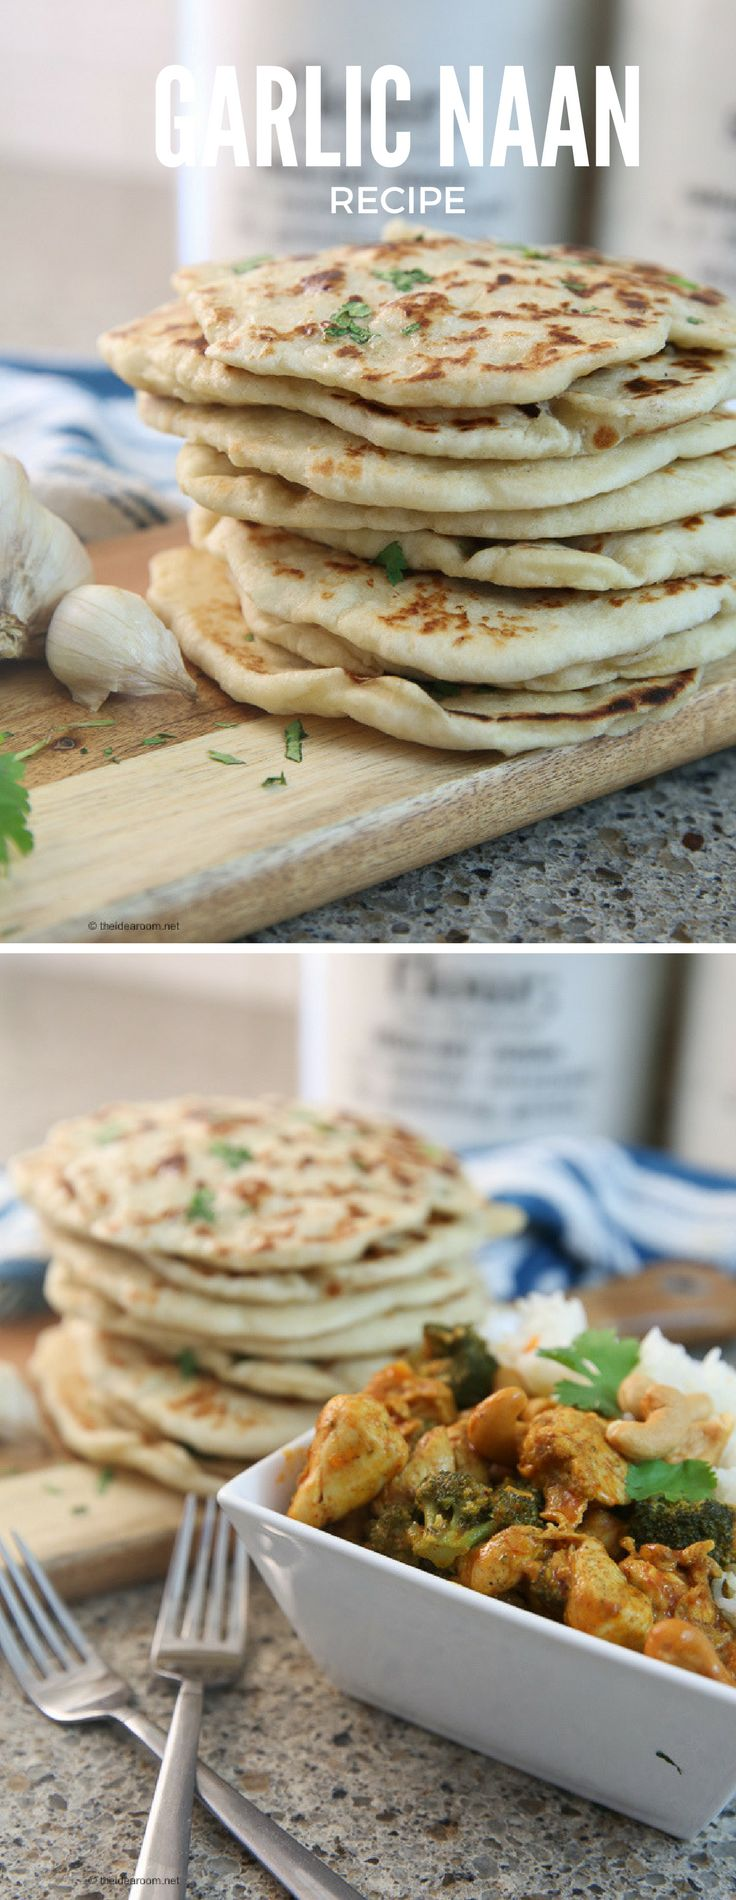 Learn how to make this Garlic Naan Bread on the stove or in the oven. A delicious and garlic-ky addition to your indian dinner.